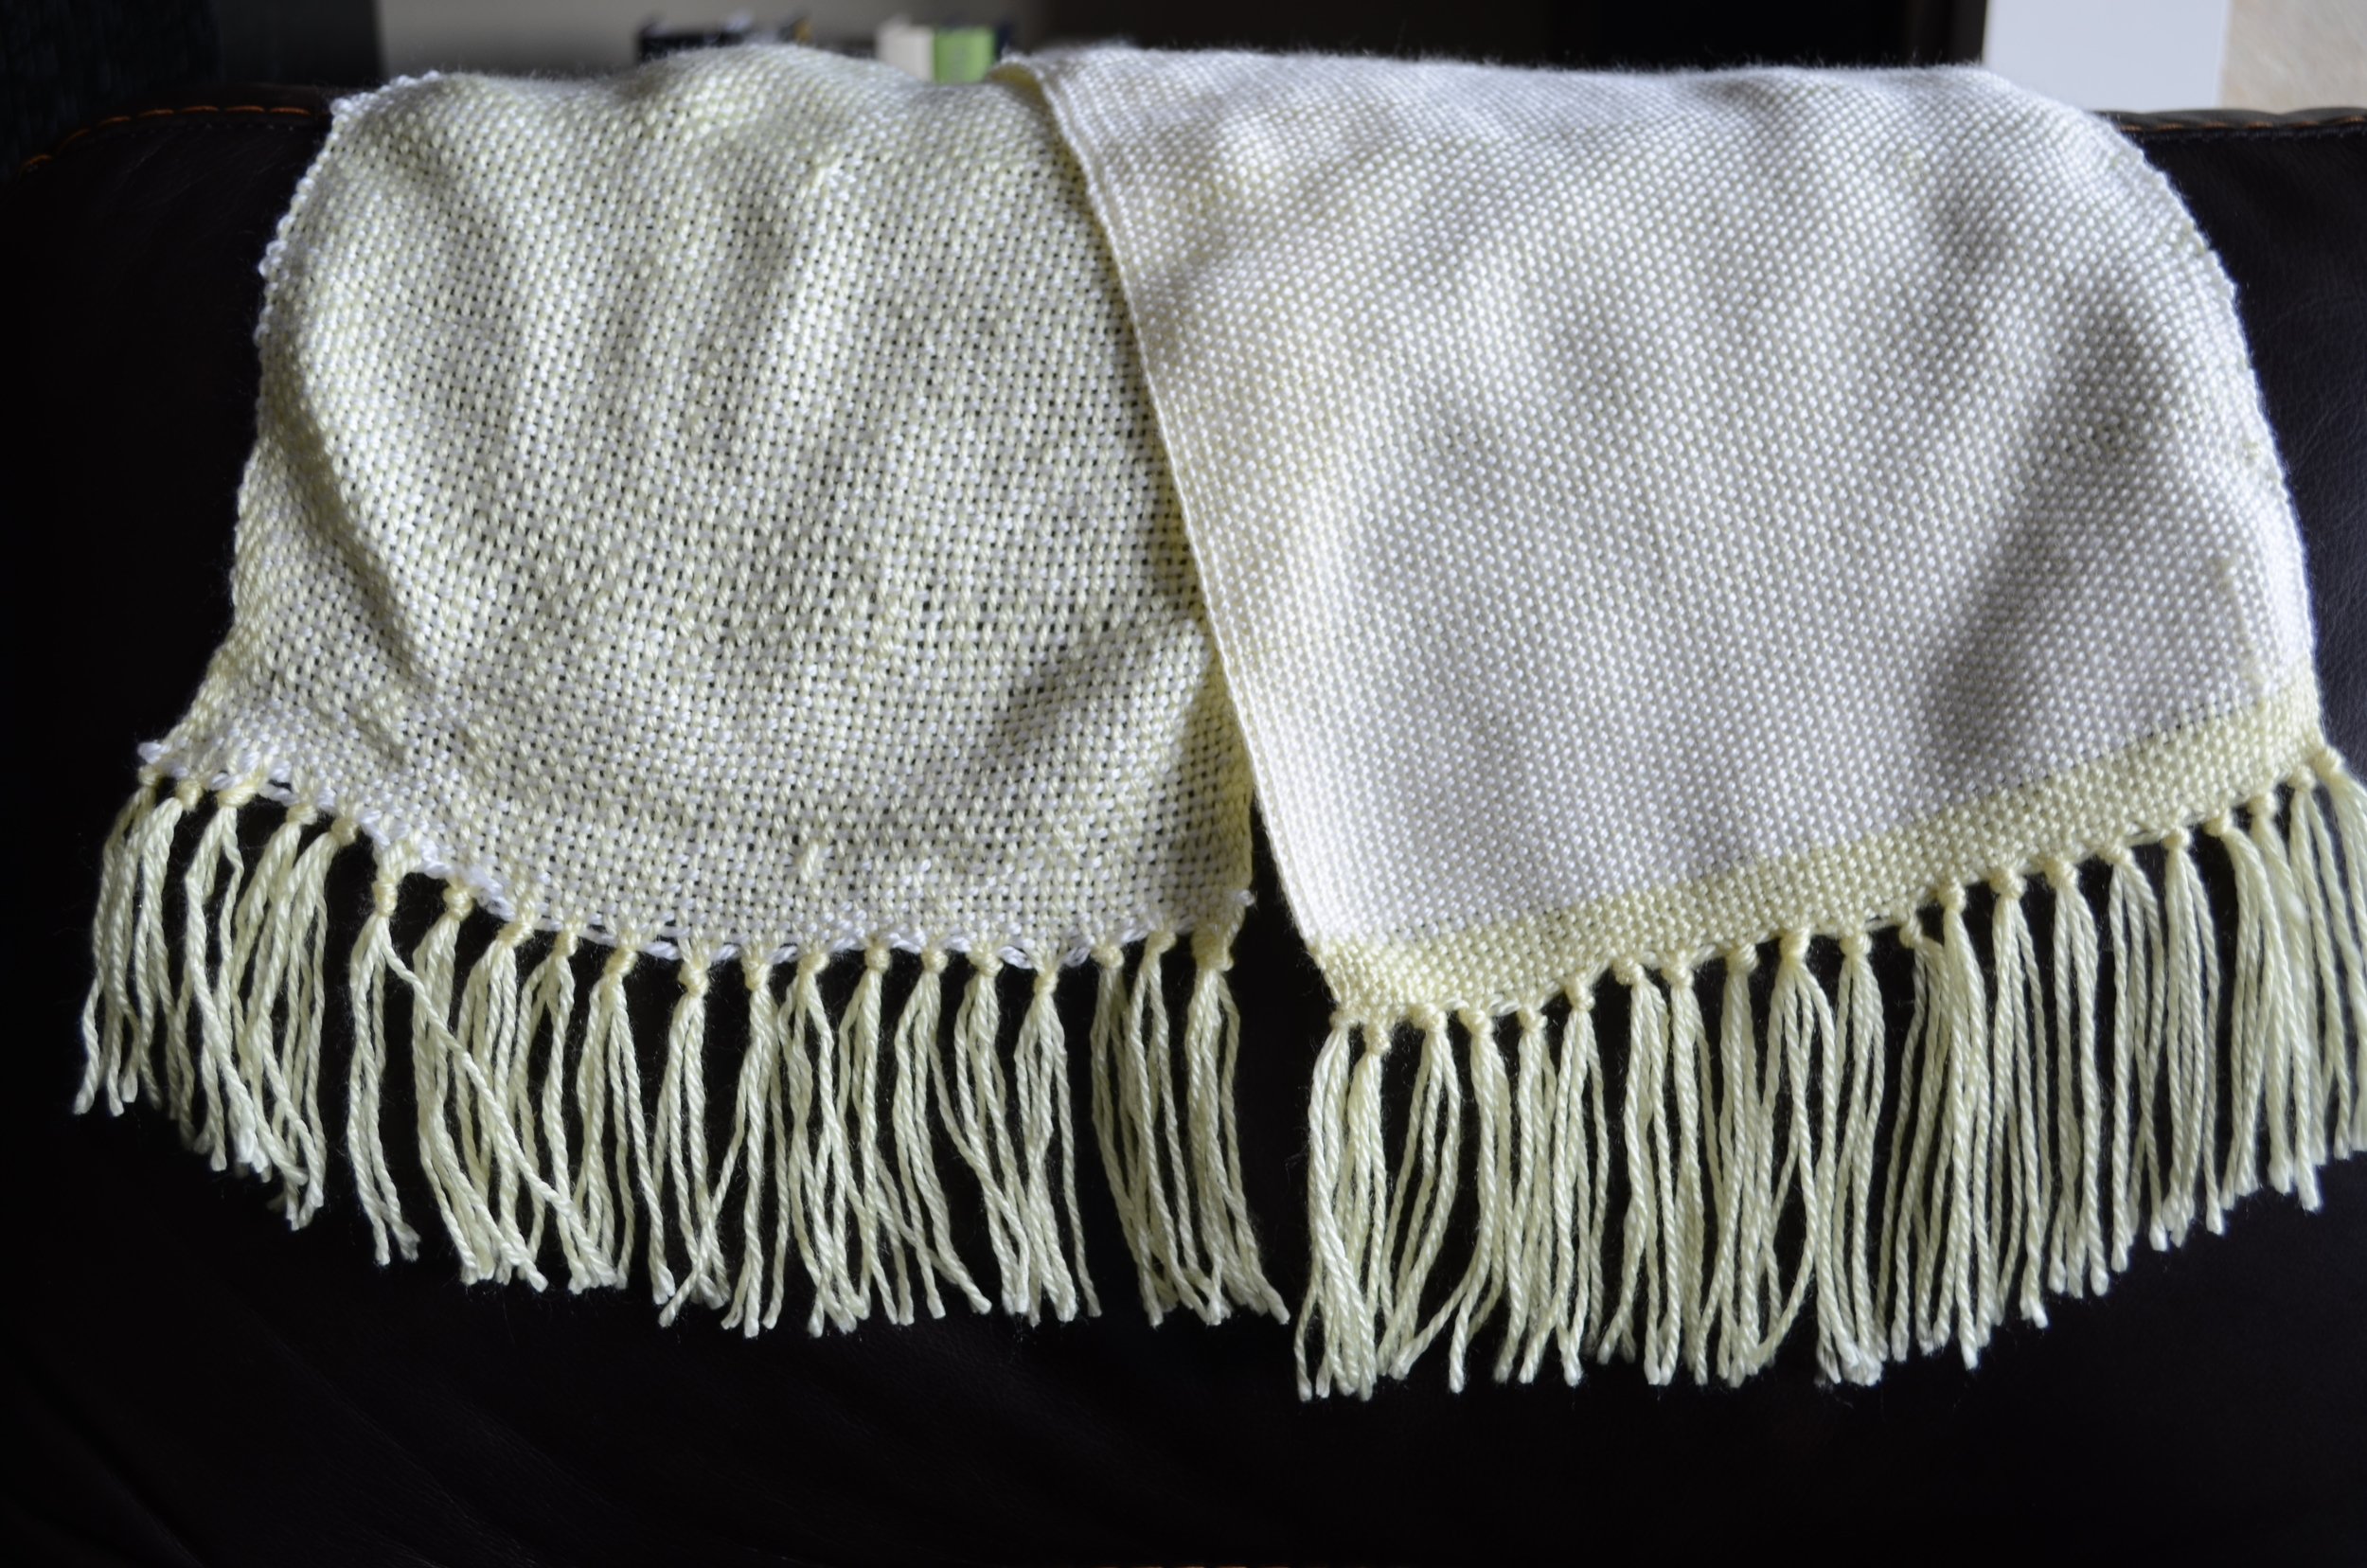 Warp or Weft: First Weaving Project